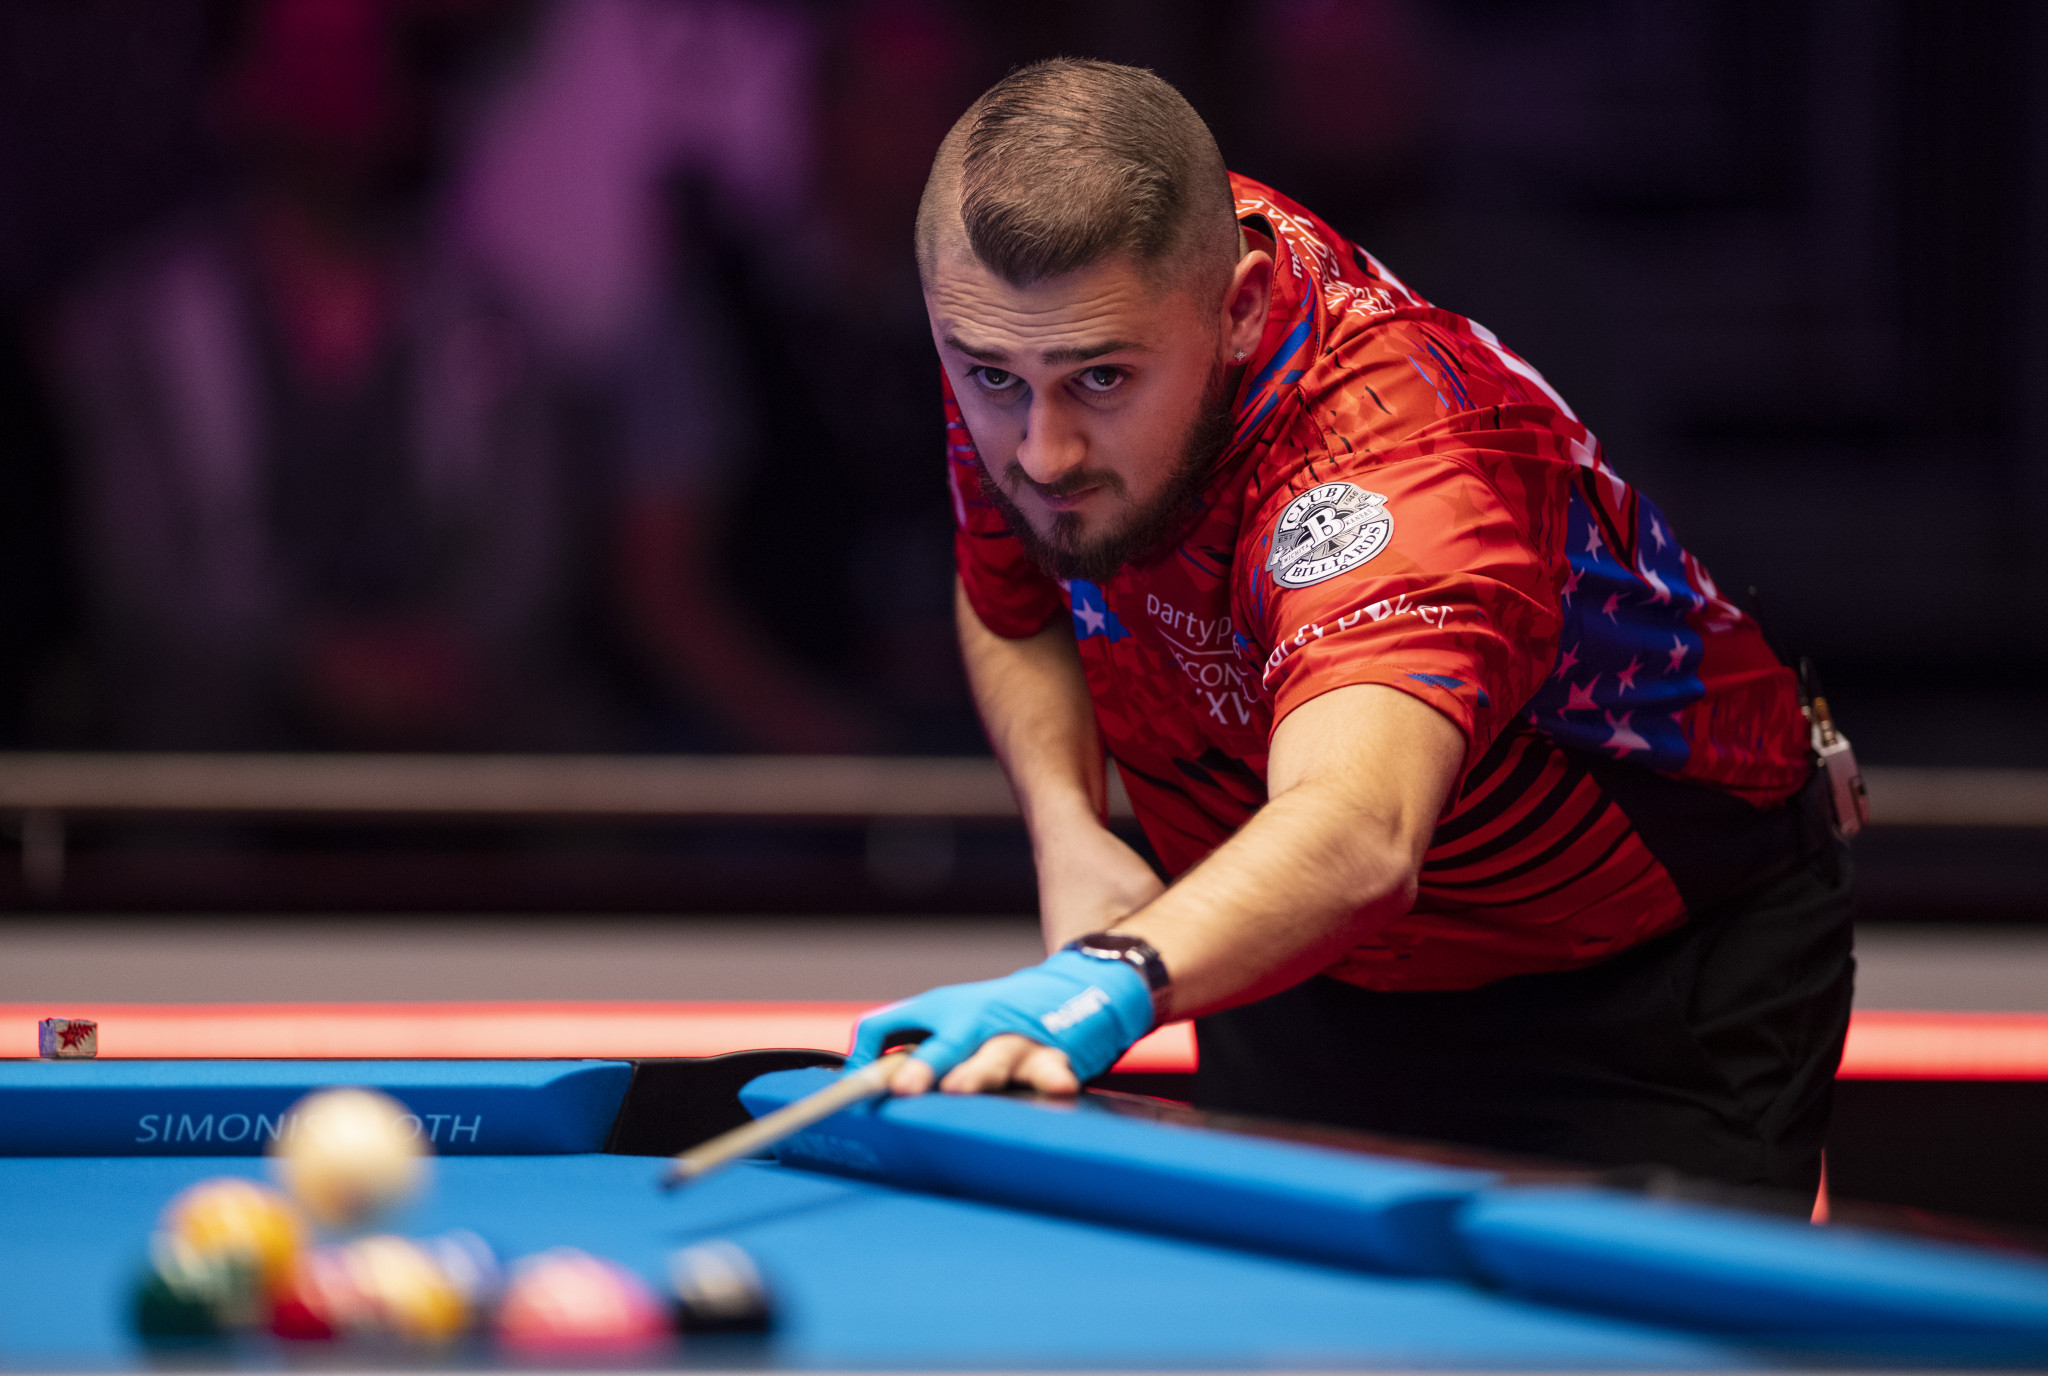 US Open Junior Pool Championship launched by BCA